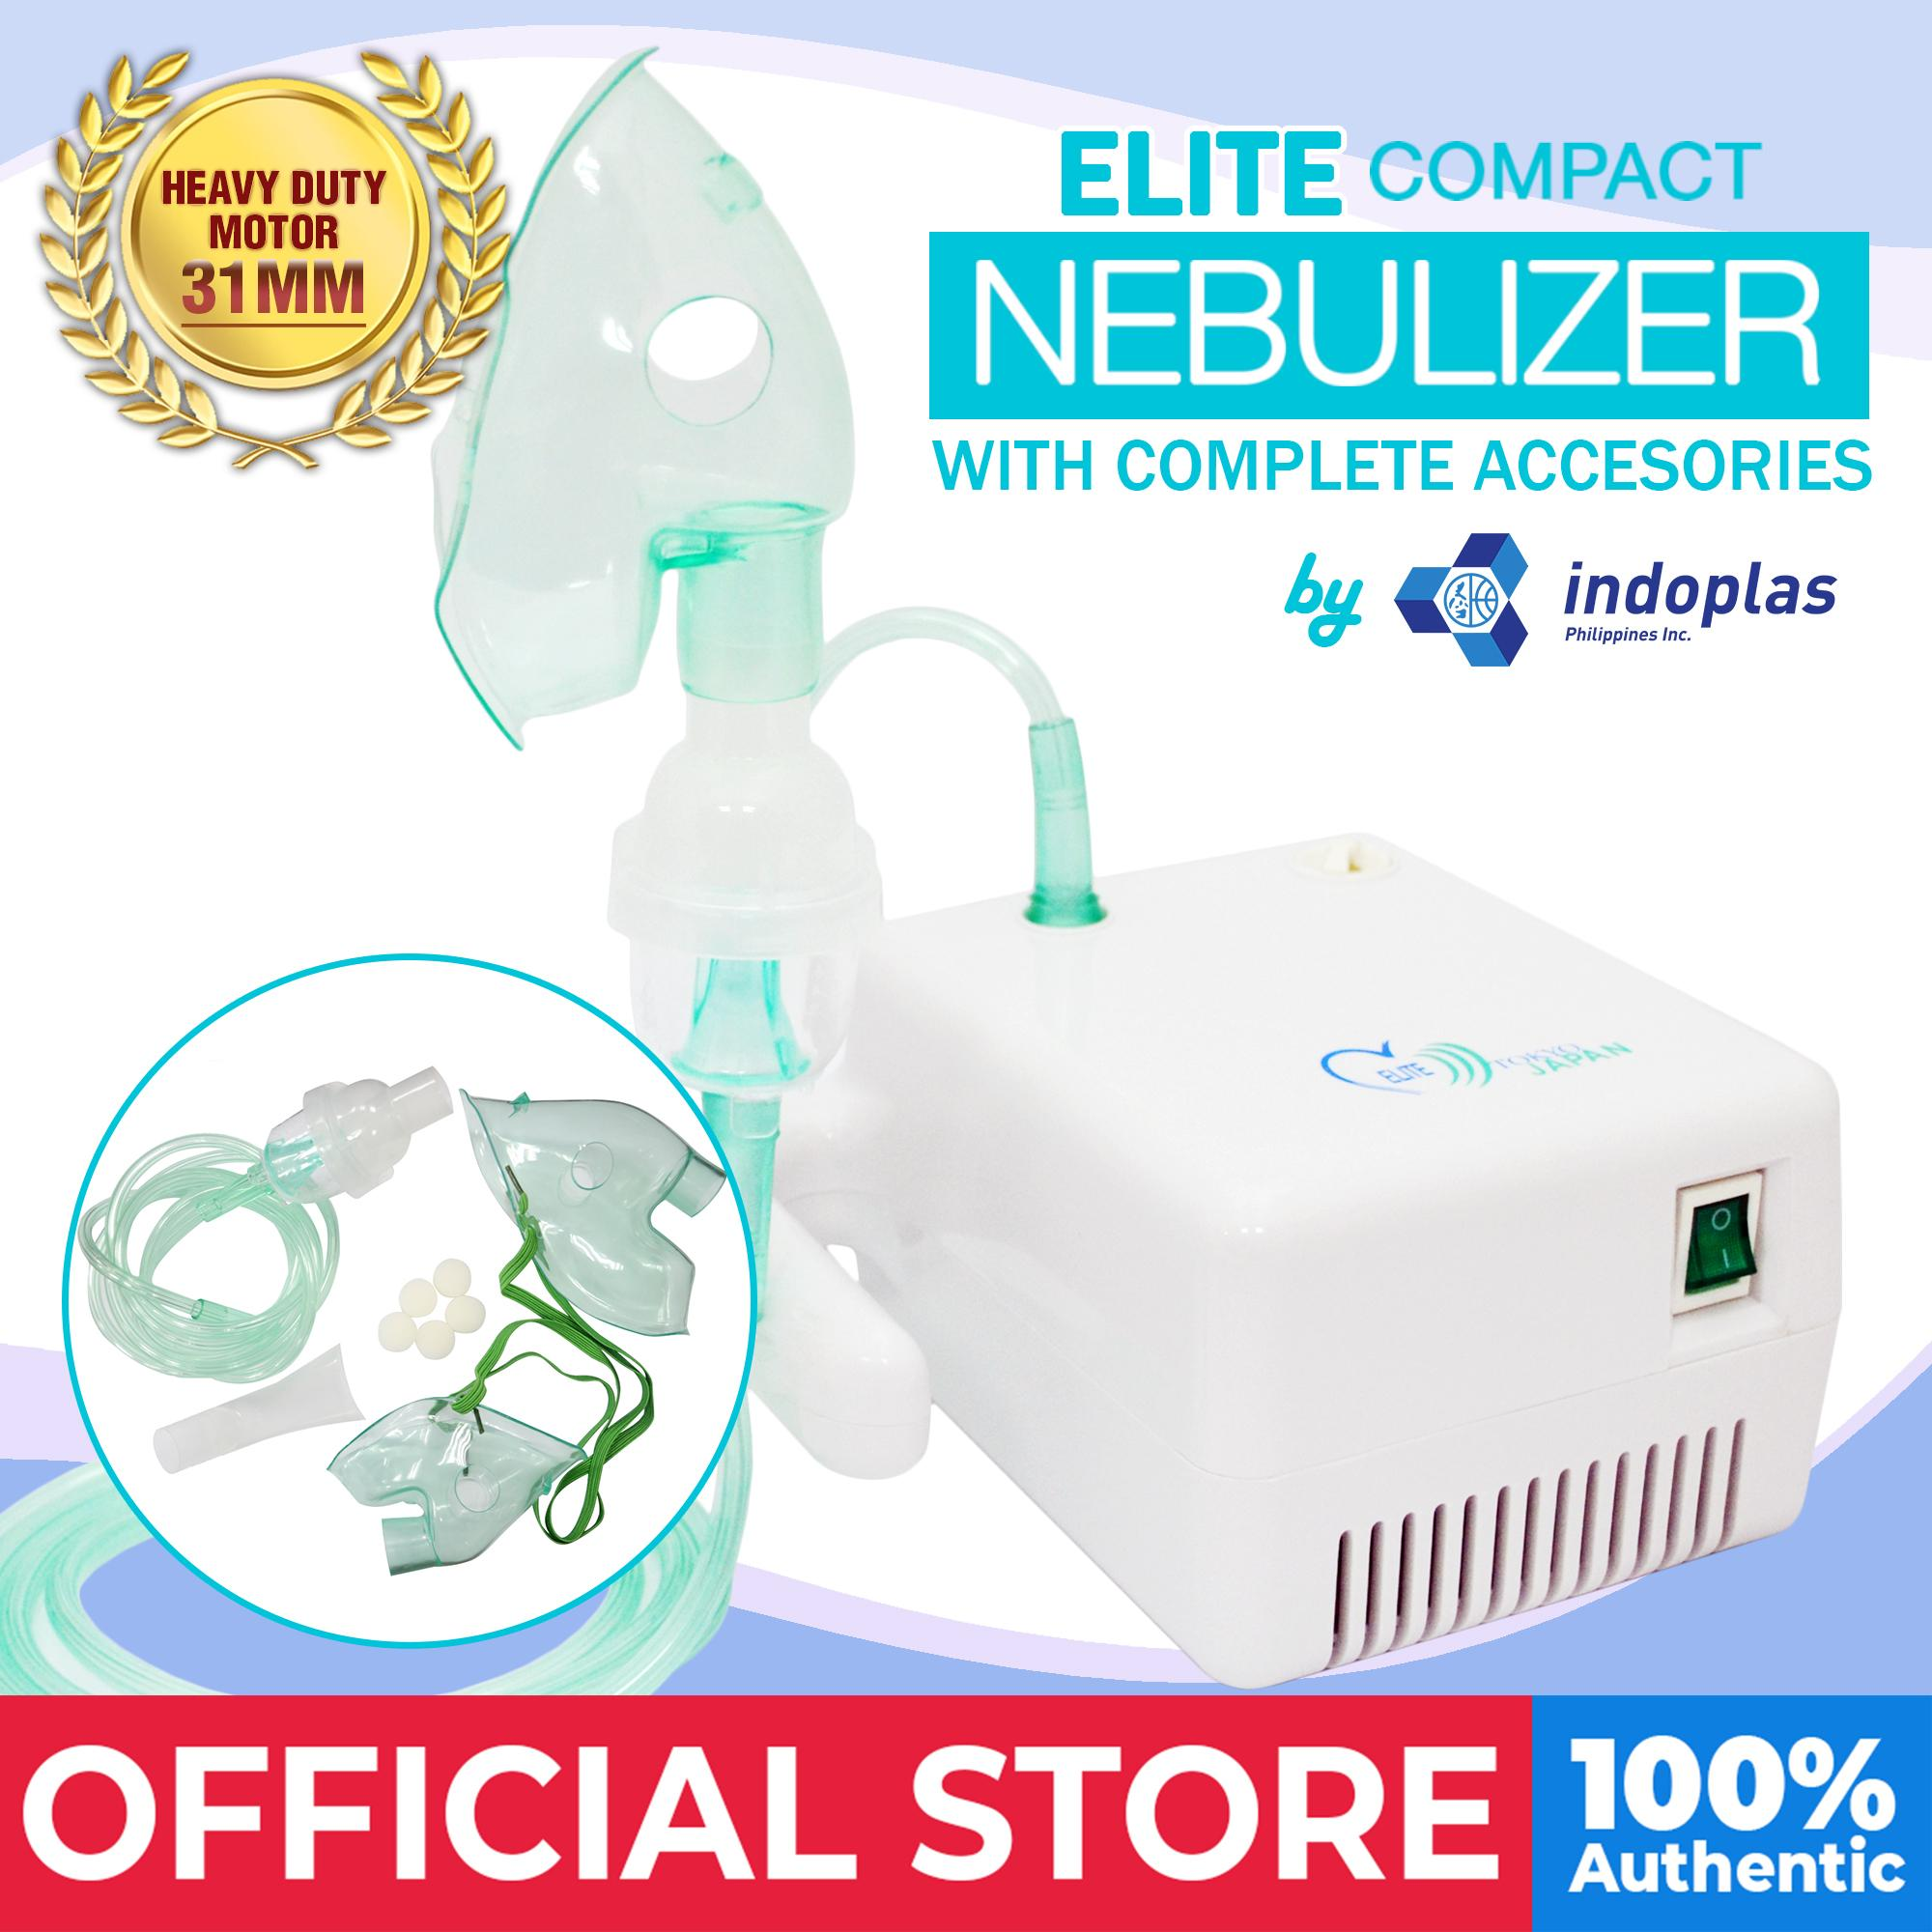 Elite Compact Nebulizer (w/ Complete Accessories) By Medical Supplies Philippines.